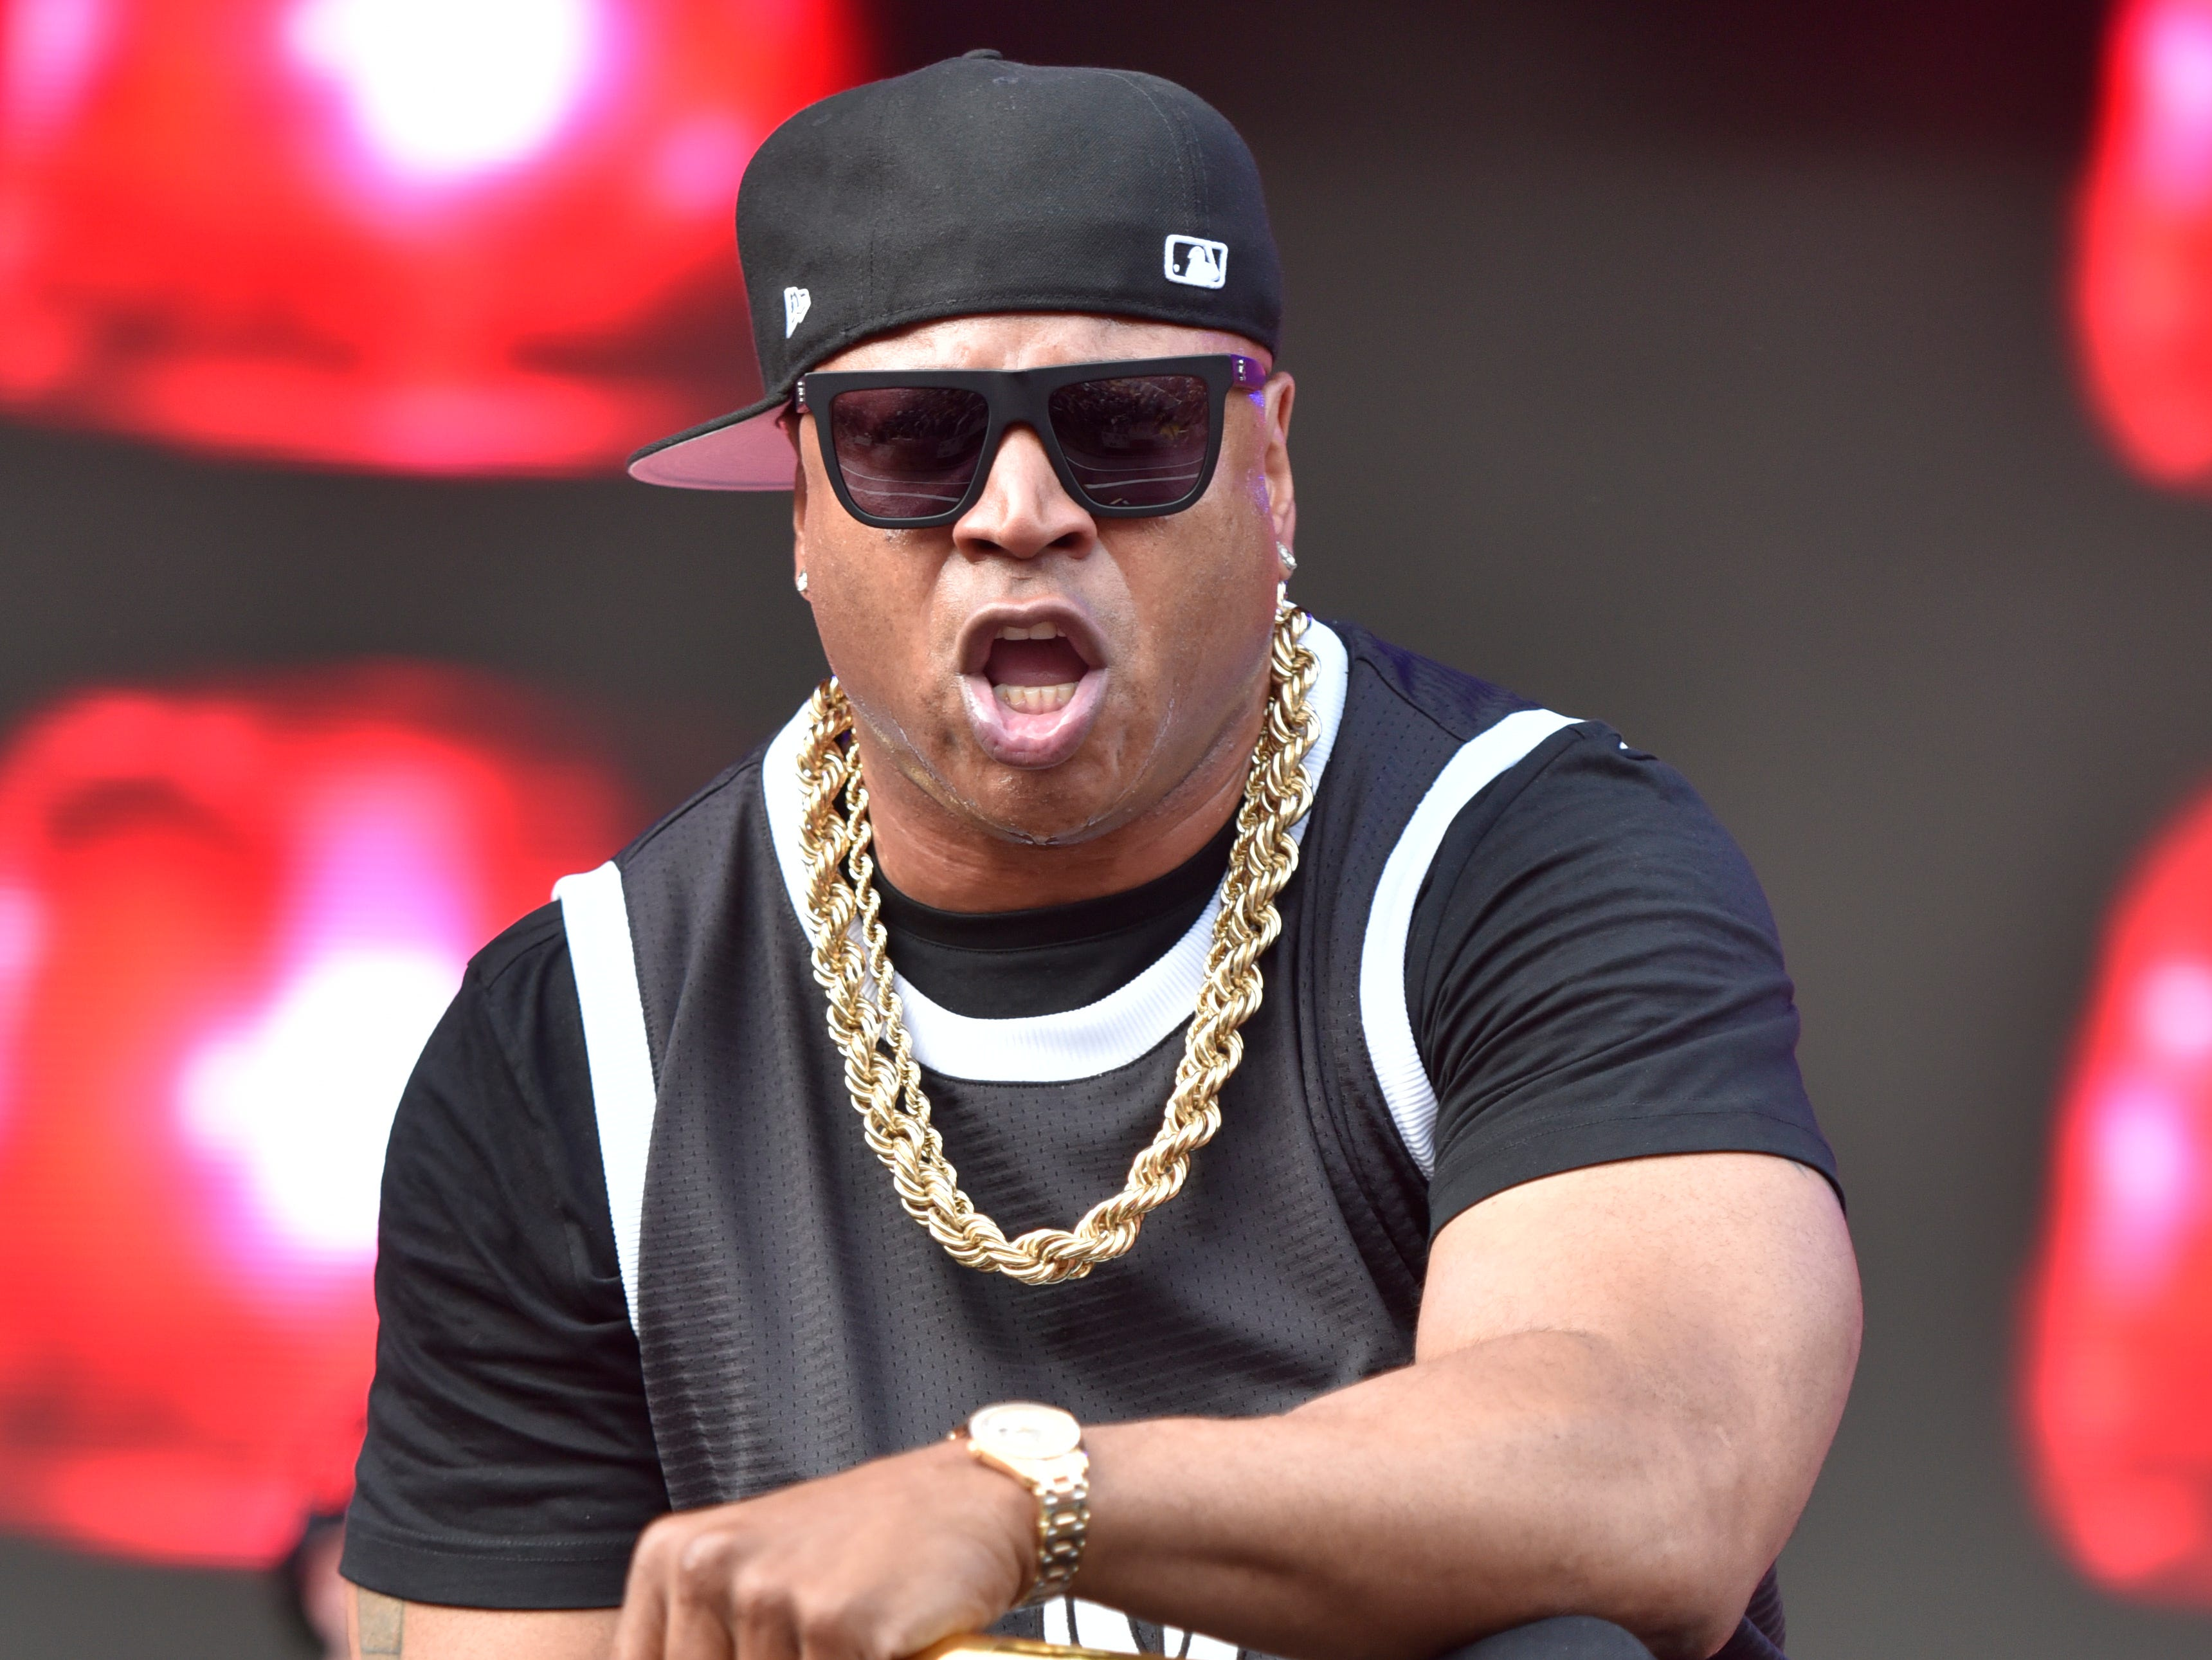 LL Cool J brought out the bling while performing on Day 3 at Lollapalooza.